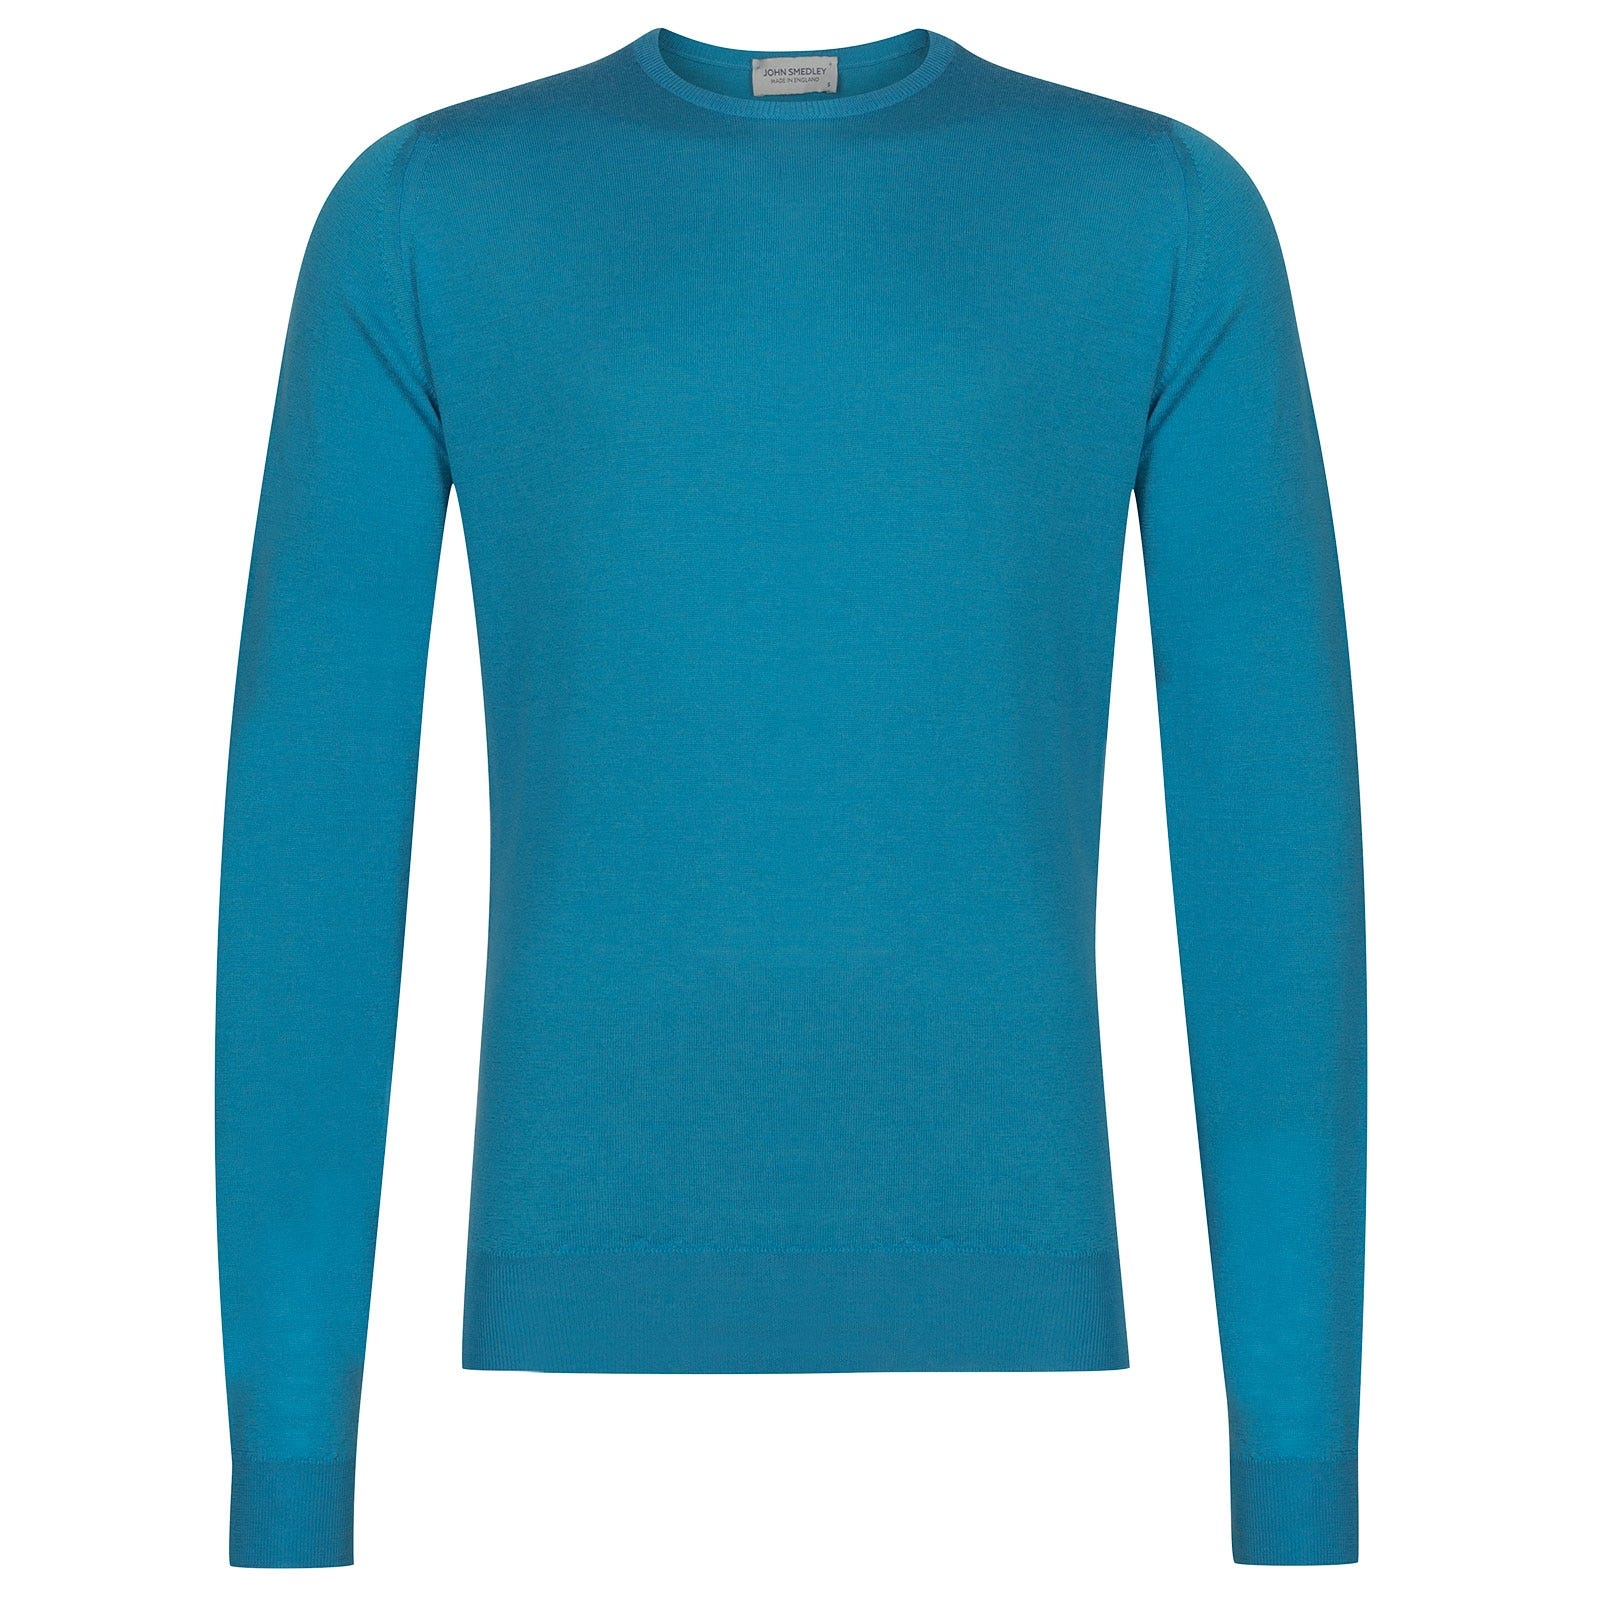 John Smedley Lundy Merino Wool Pullover in Ionize Blue-L